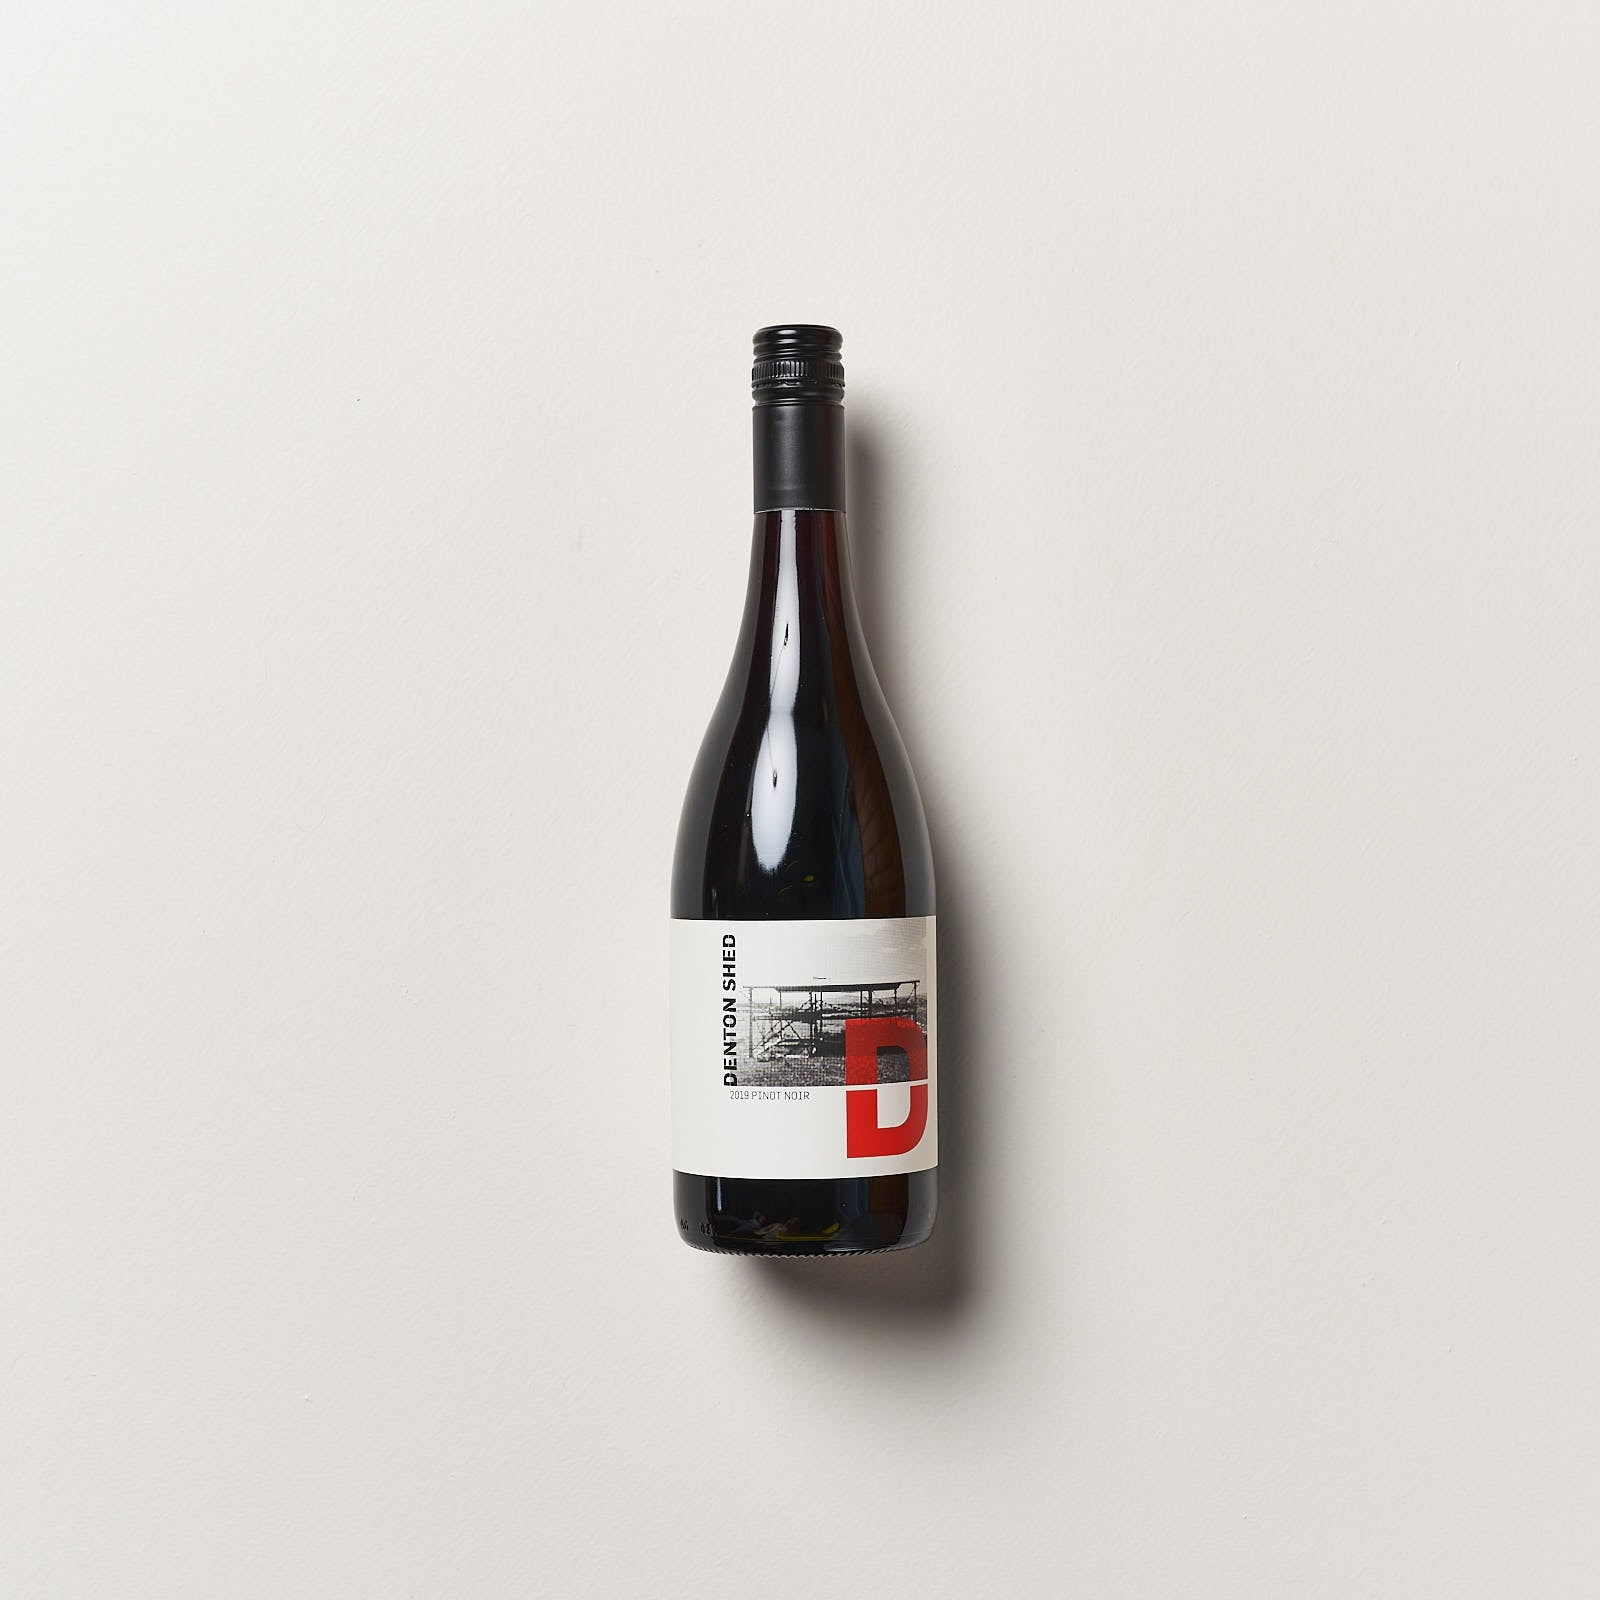 2019 Denton 'Shed' Pinot Noir, Yarra Valley VIC